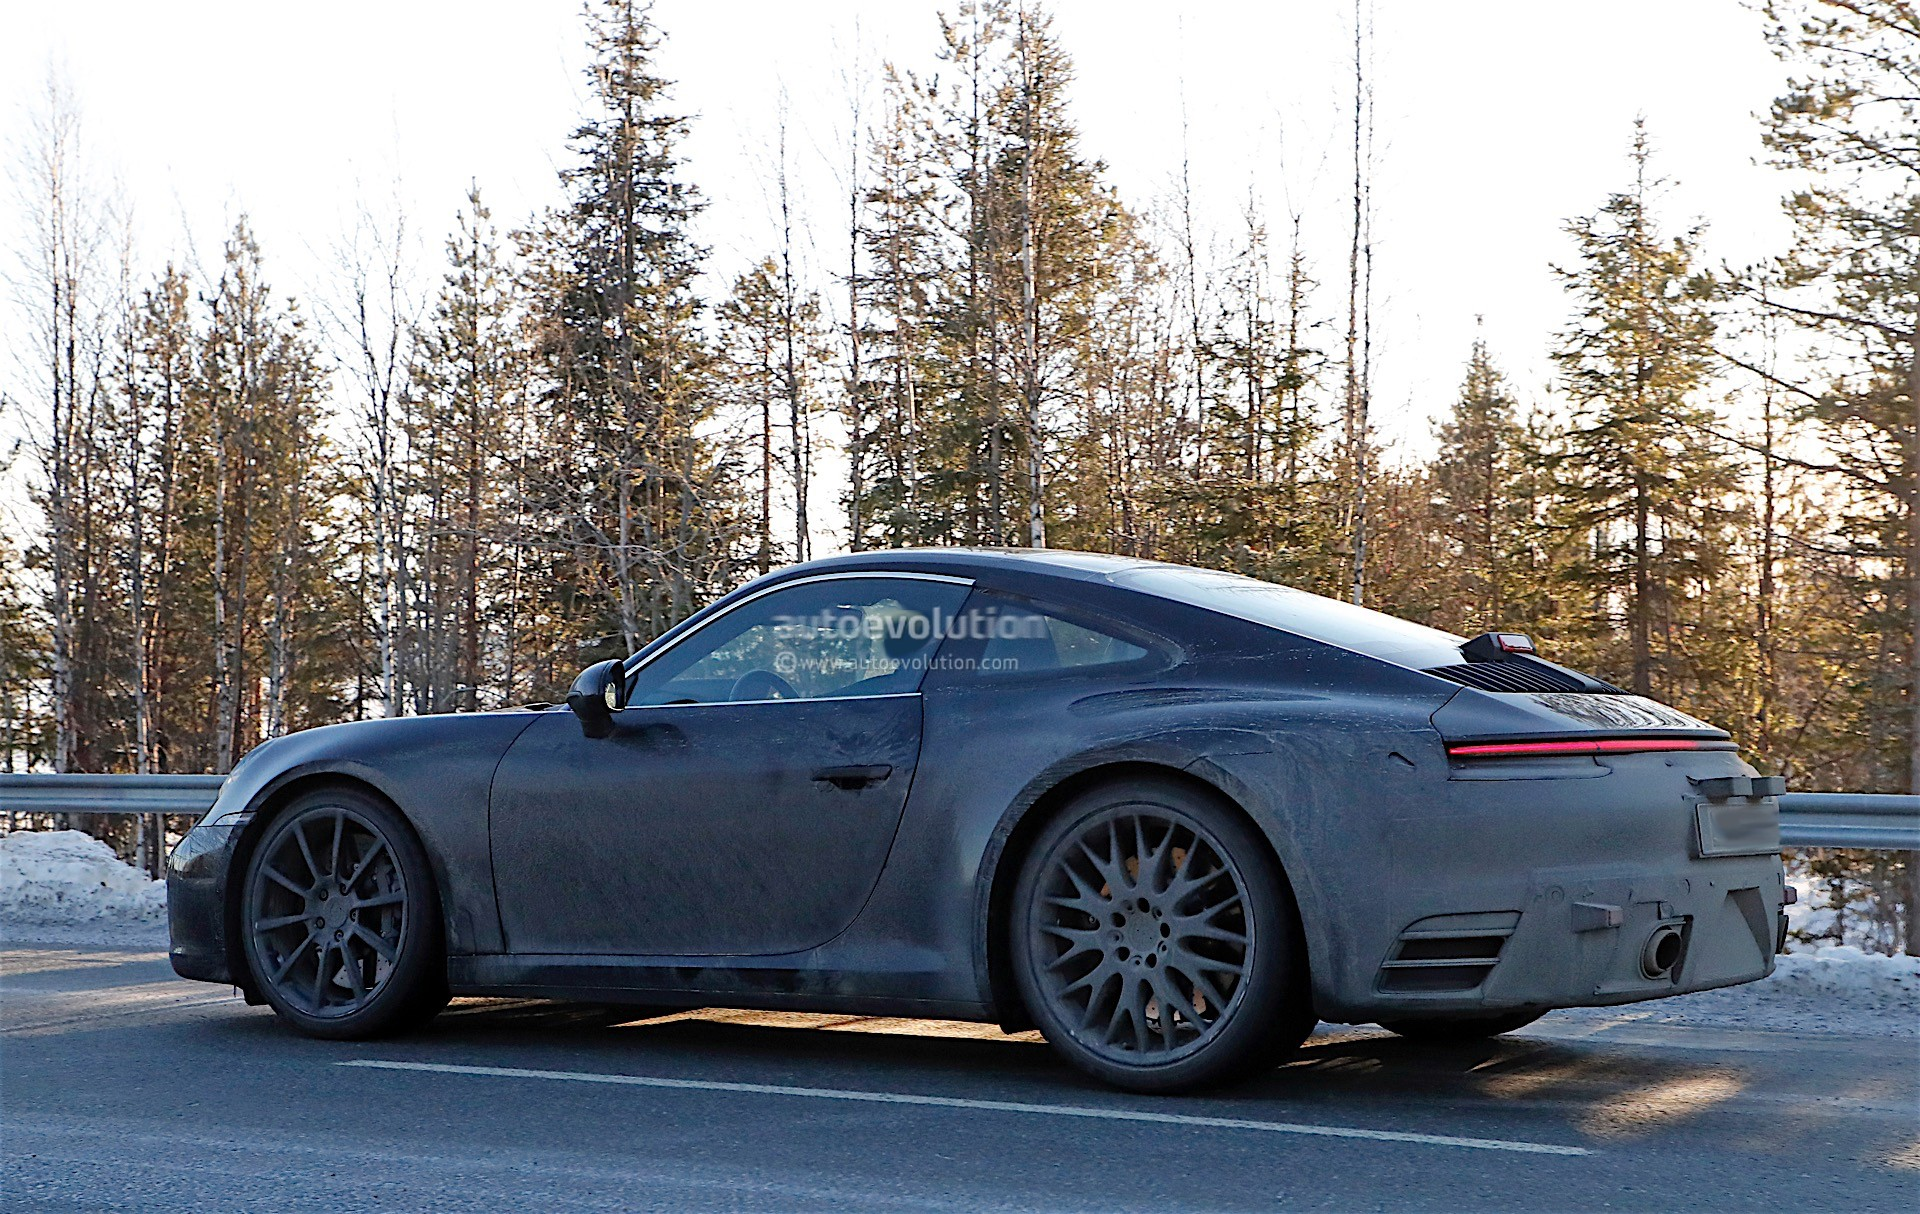 spy-photos-porsche-911-992-poses-with-the-spoiler-down-1-and-2-of-12_7